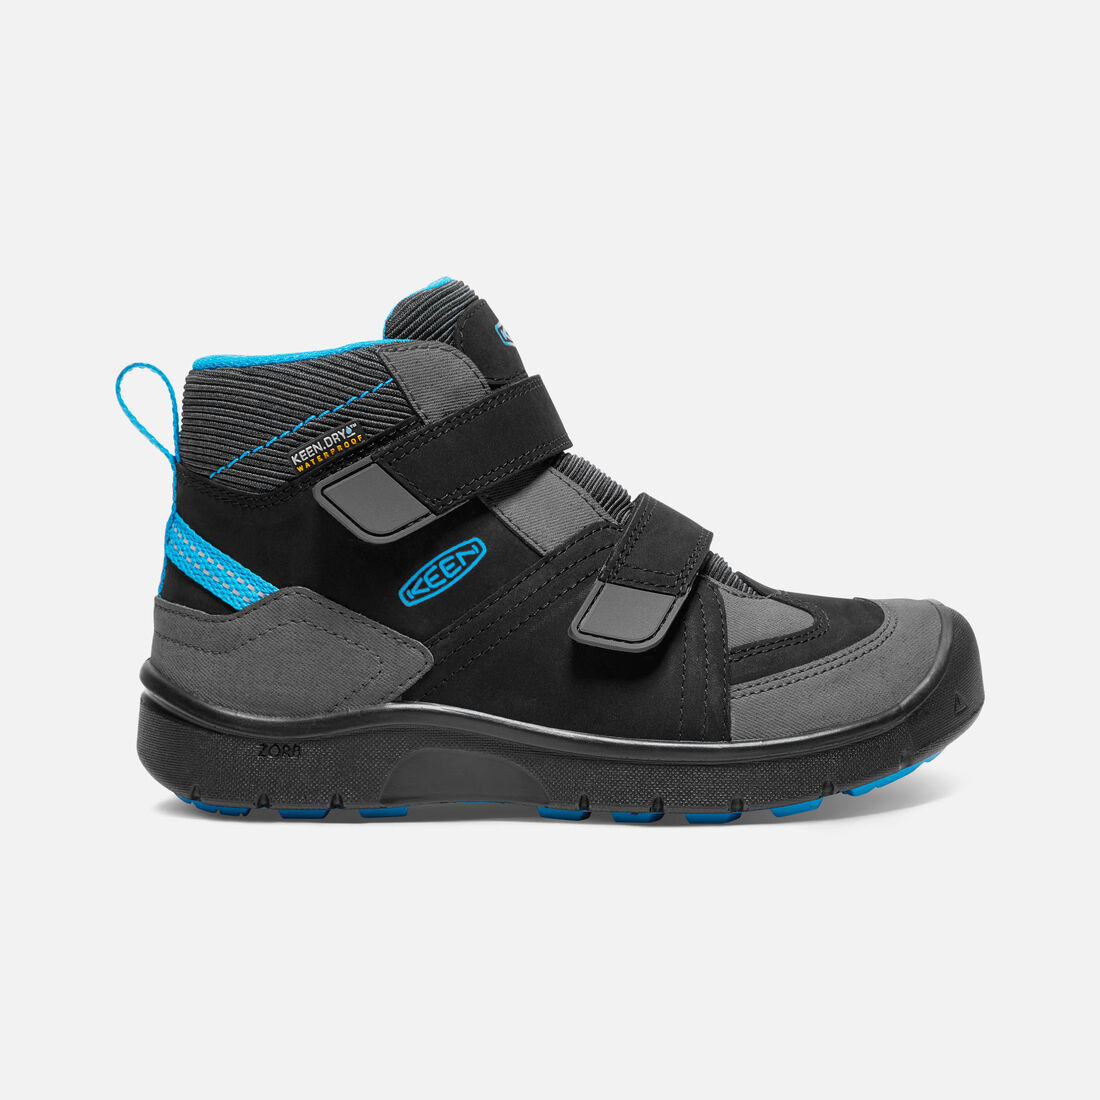 Big Kids' HIKEPORT STRAP Waterproof Mid in Black/Blue Jewel - large view.